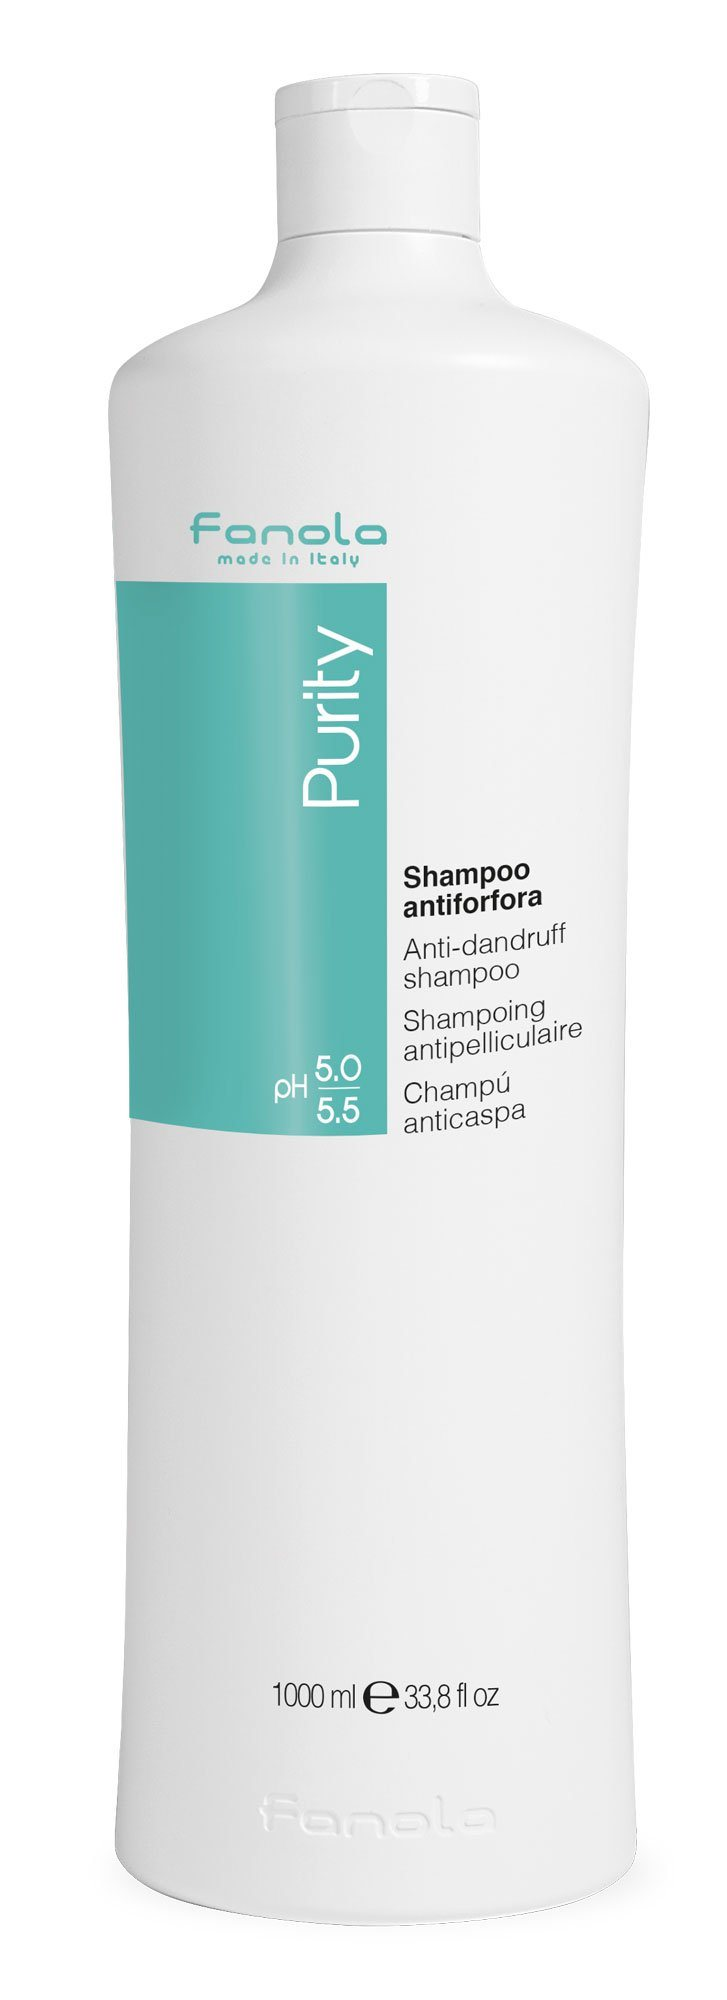 Fanola Purity Anti-Dandruff Shampoo Hair Shampoos Fanola 1000 mL